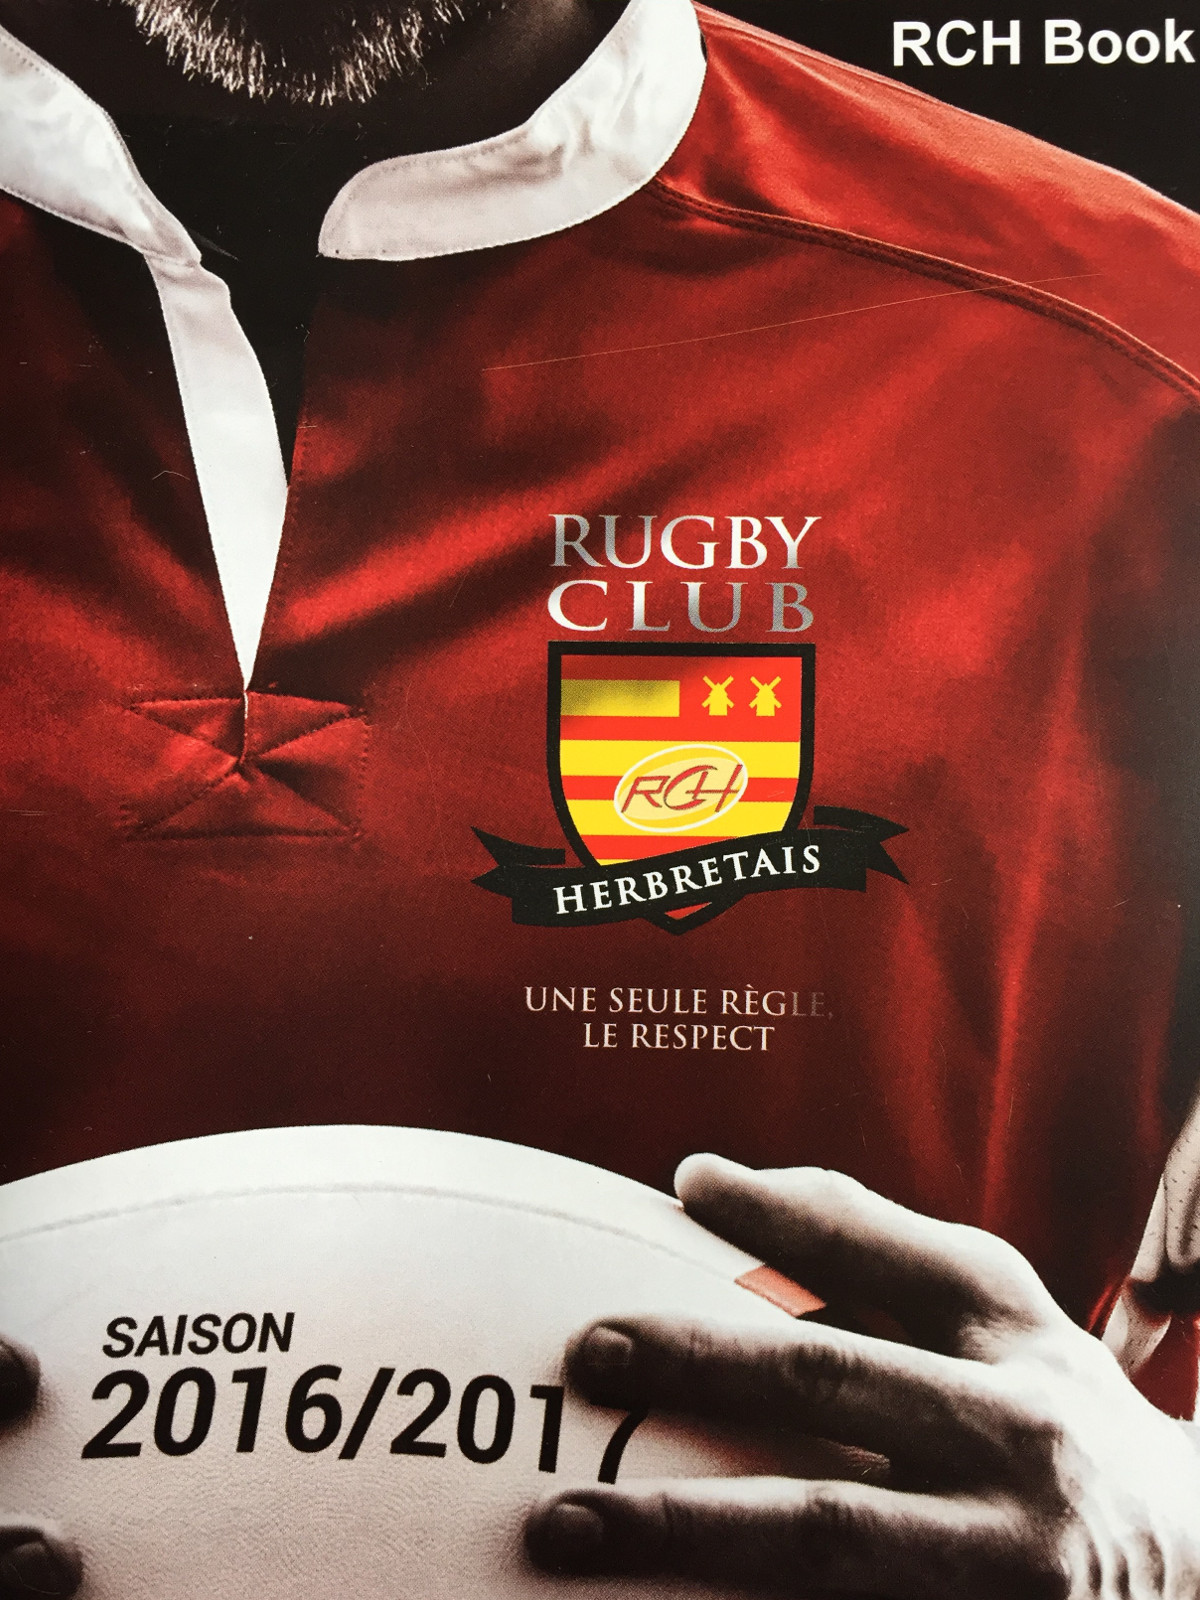 Brand Conception supporter du Rugby Club Herbretais